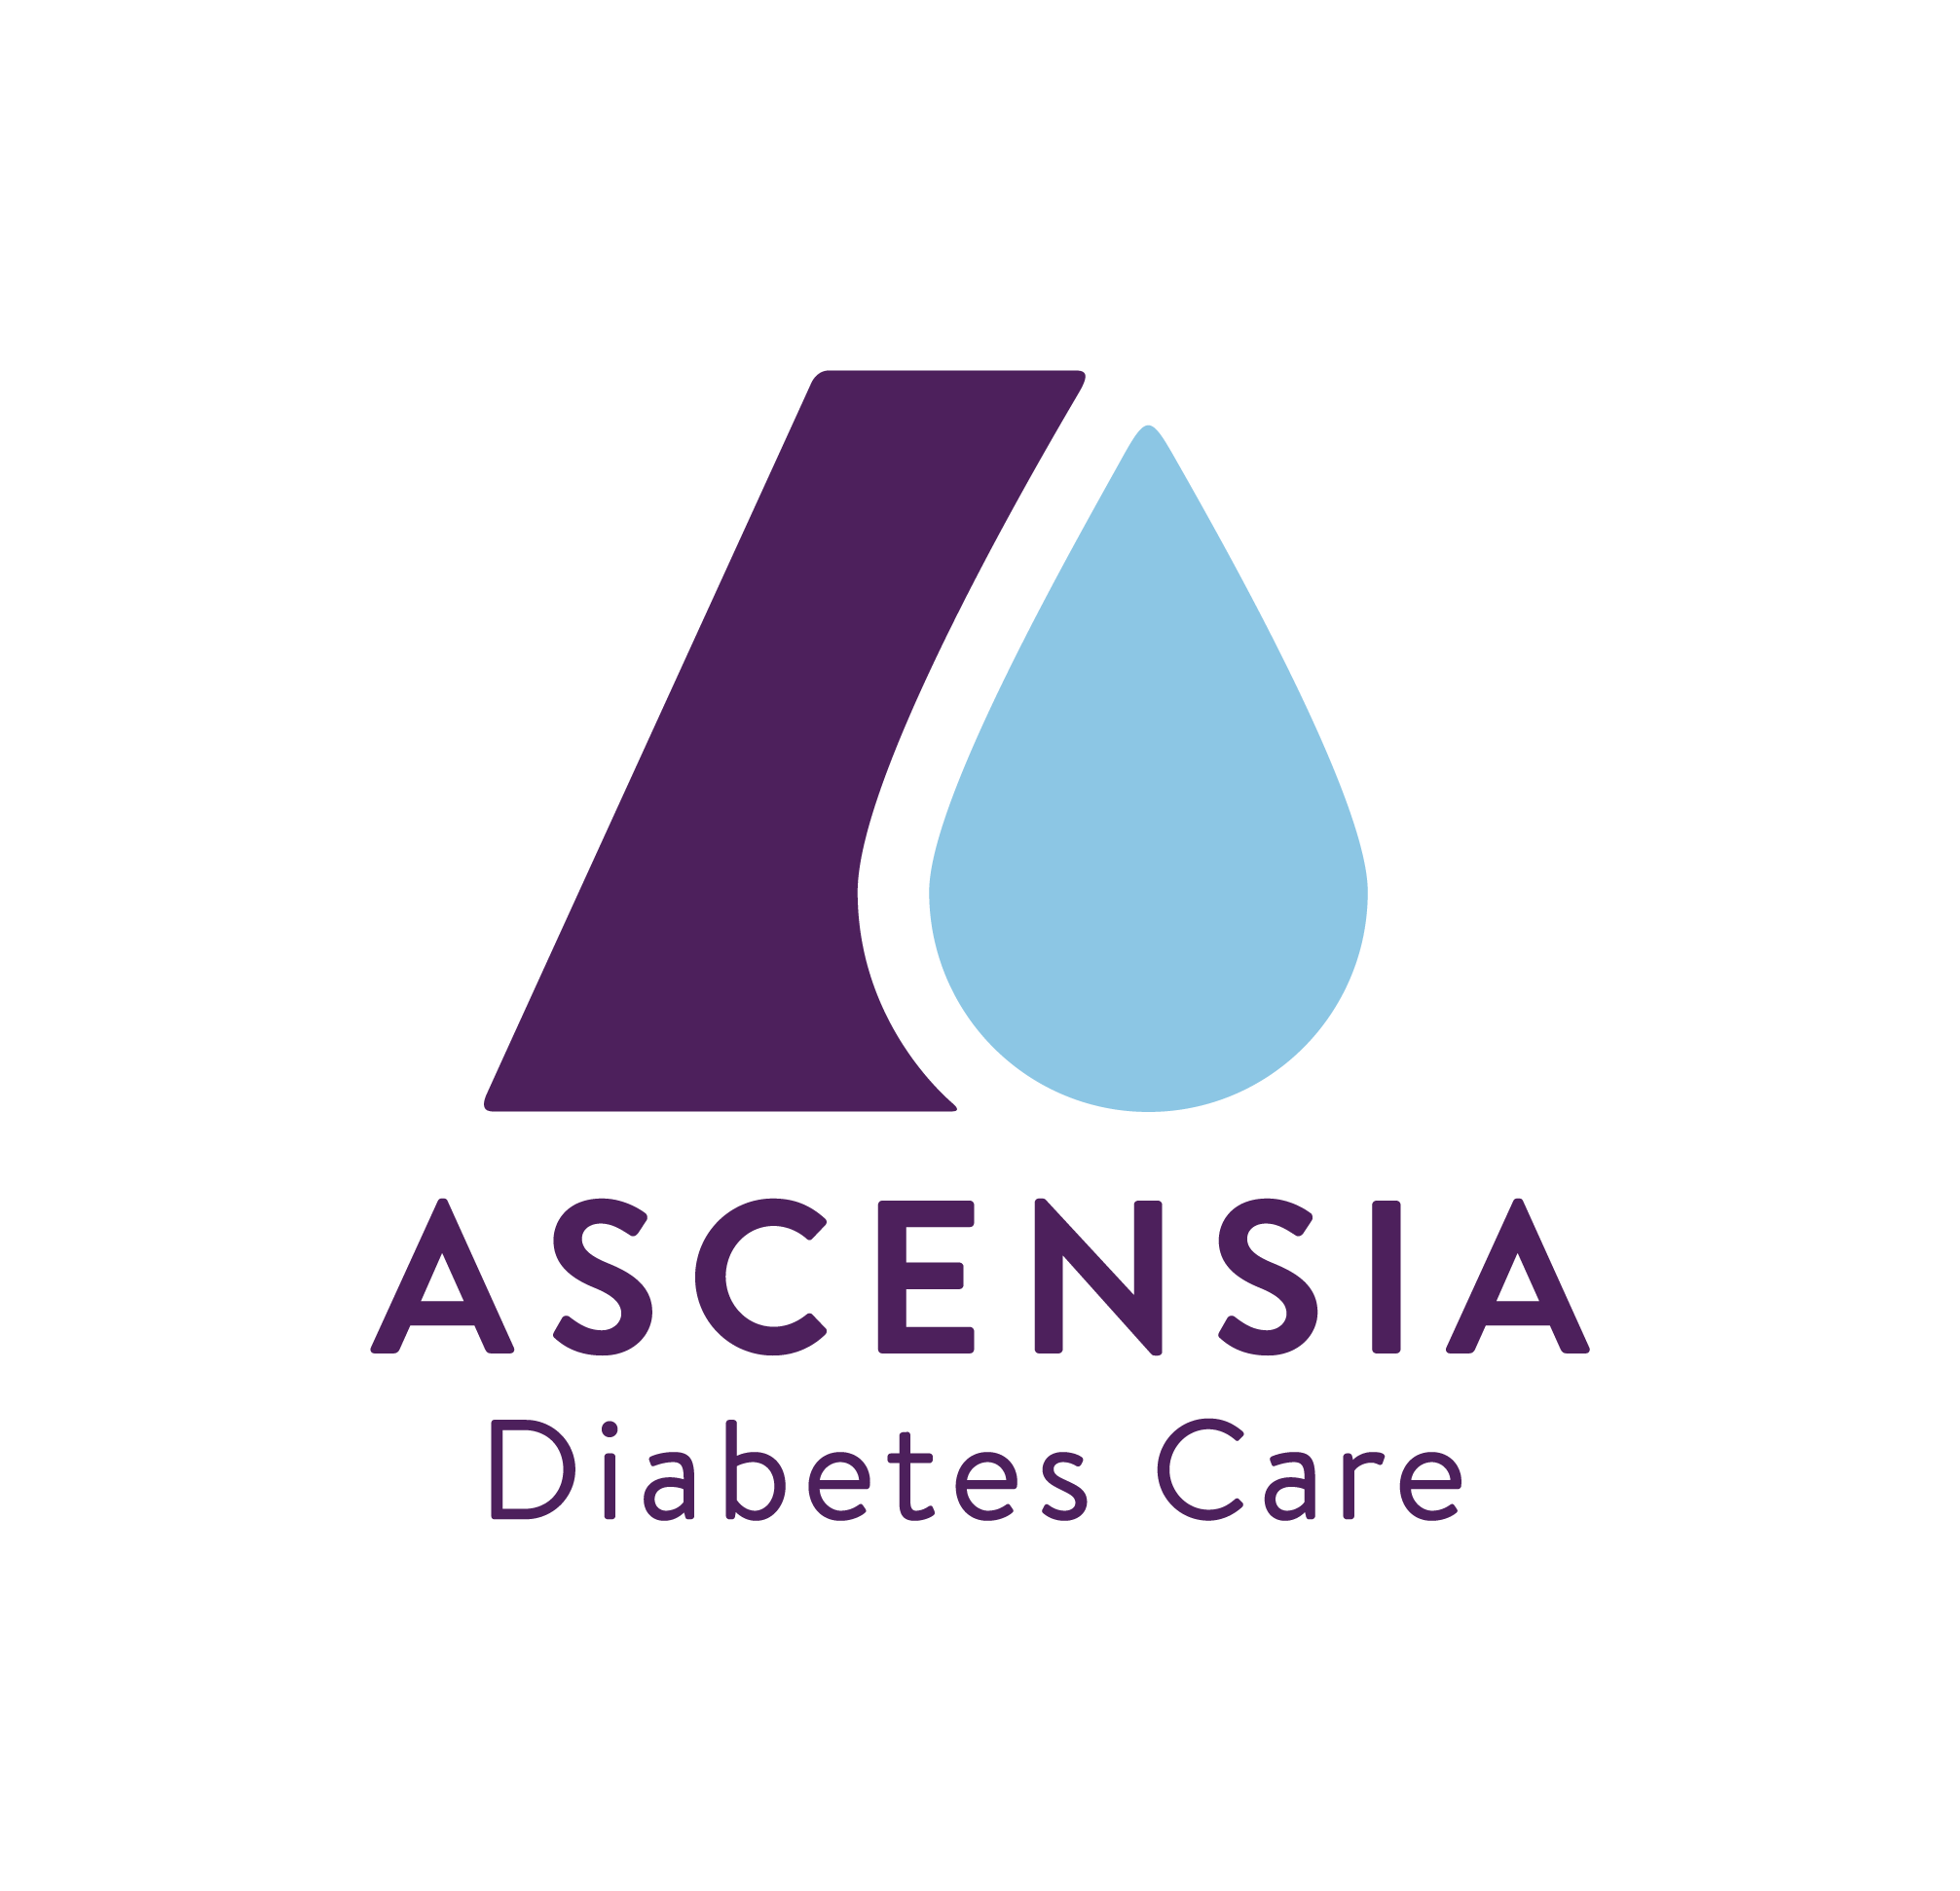 Acsensia Diabetes Care